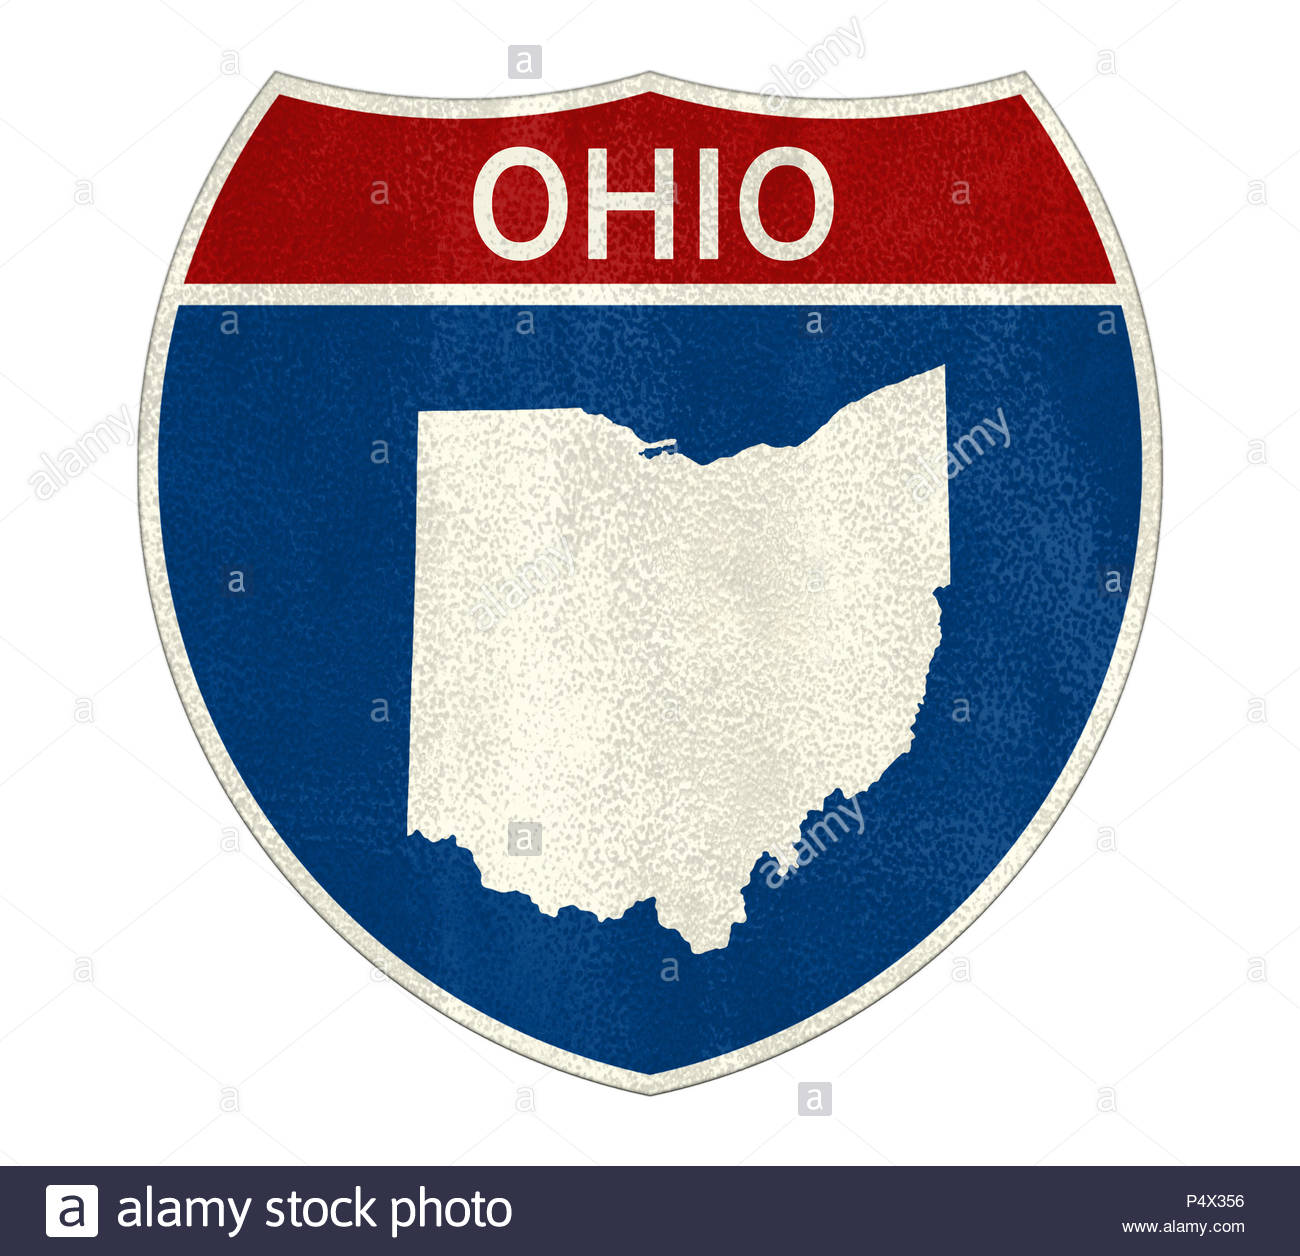 Ohio State Interstate road sign - Stock Image